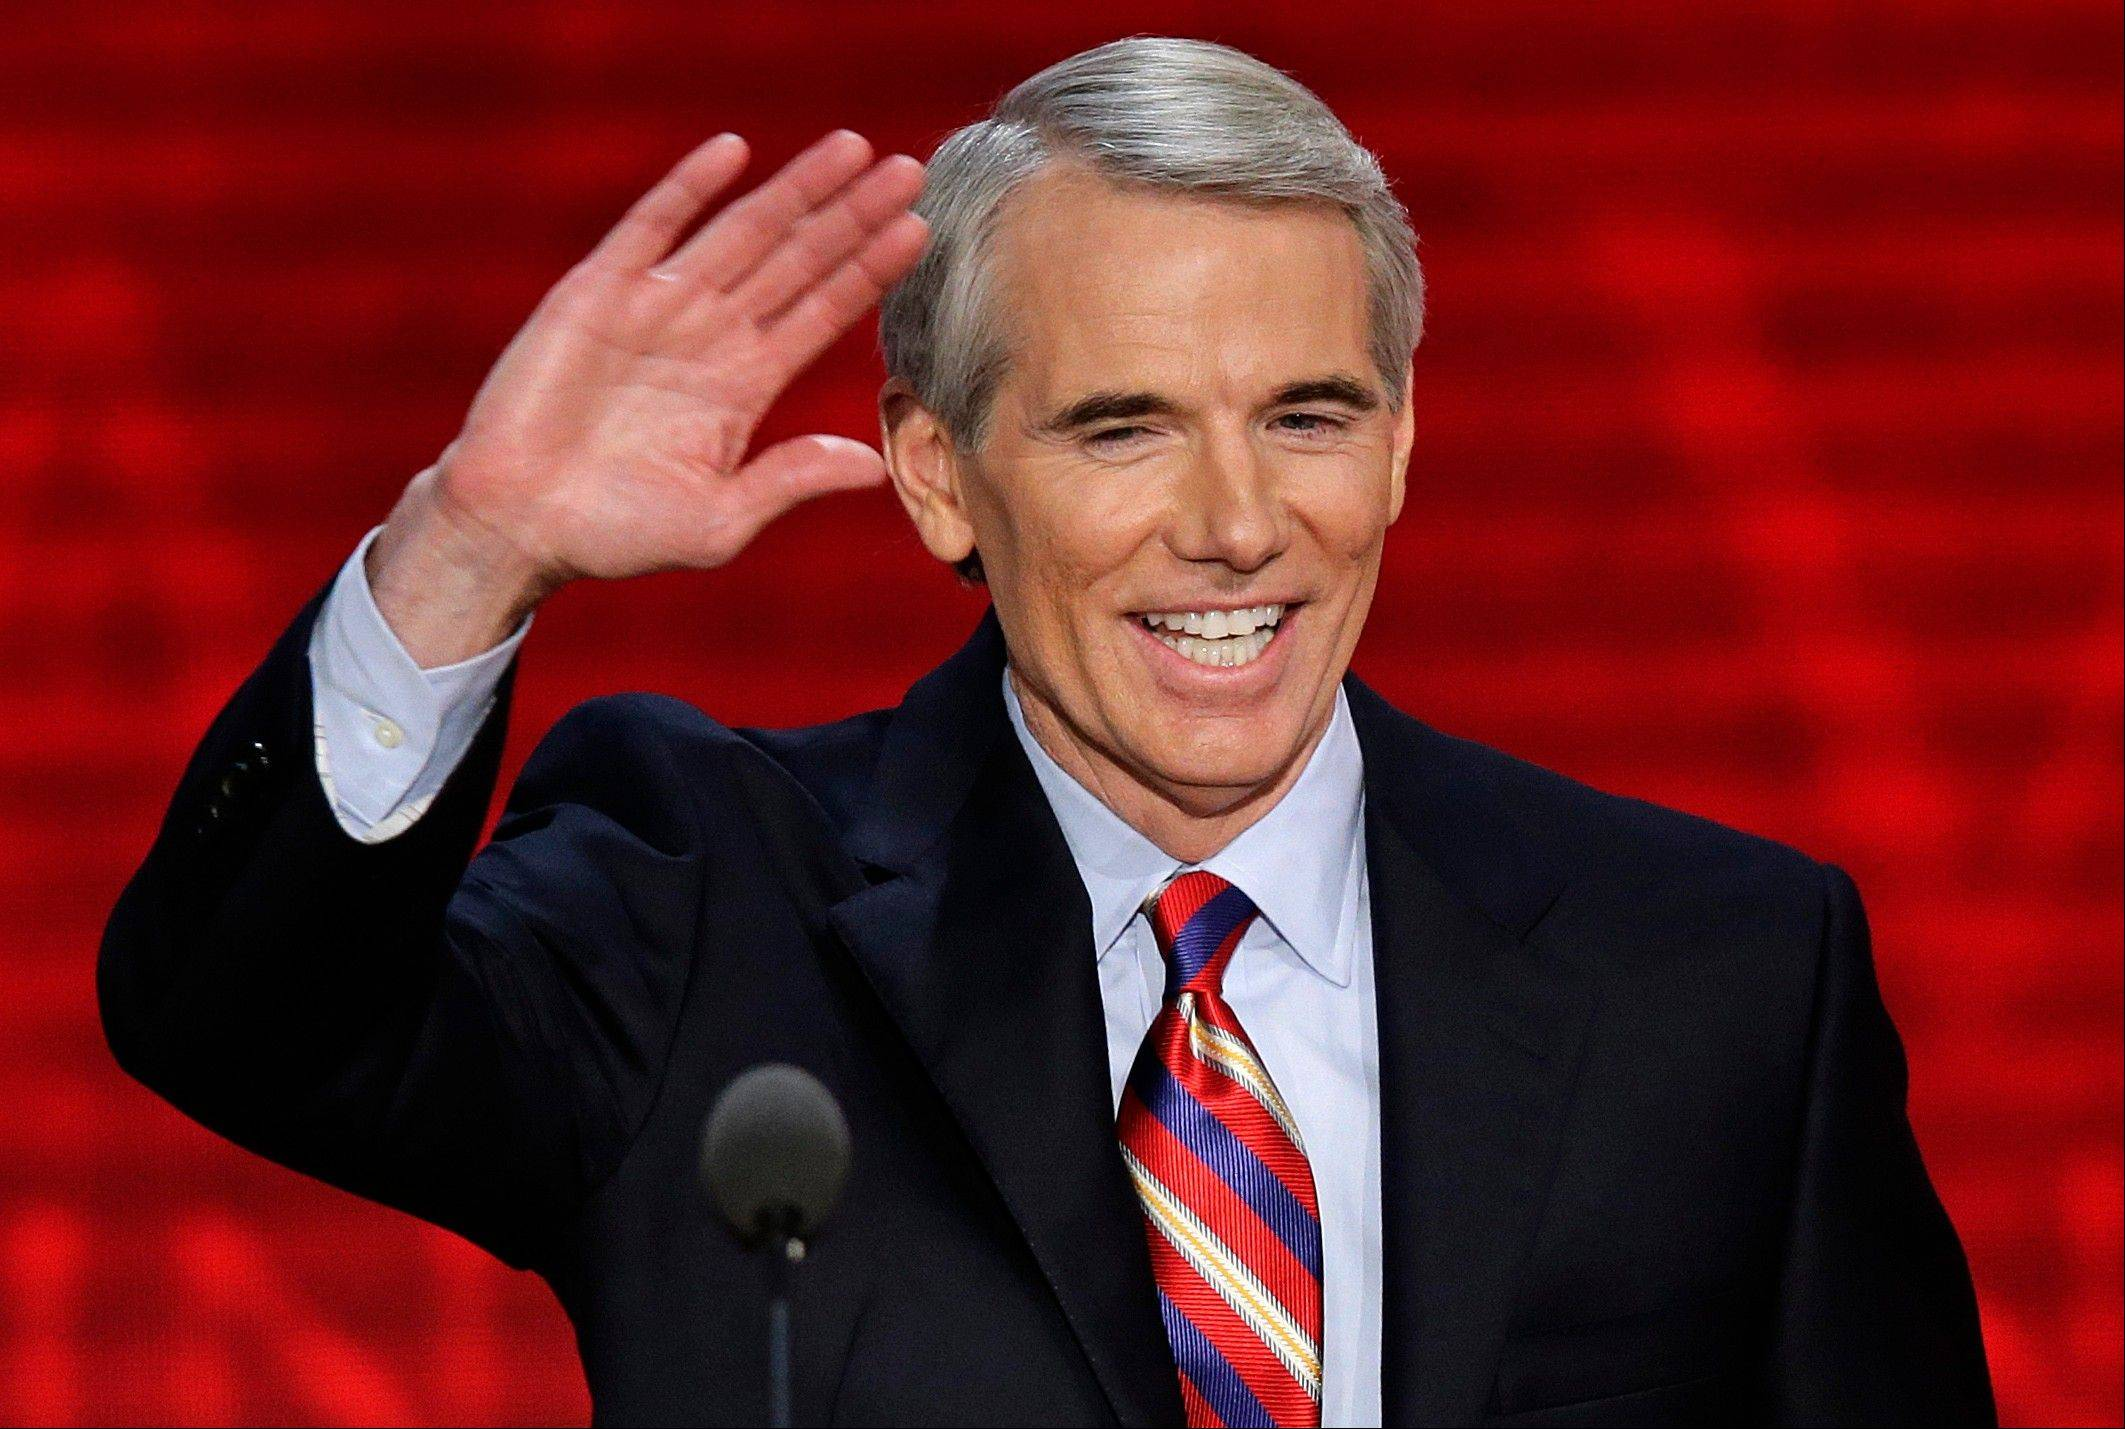 Ohio Senator Rob Portman now supports gay marriage and says his reversal on the issue began when he learned one of his sons is gay.